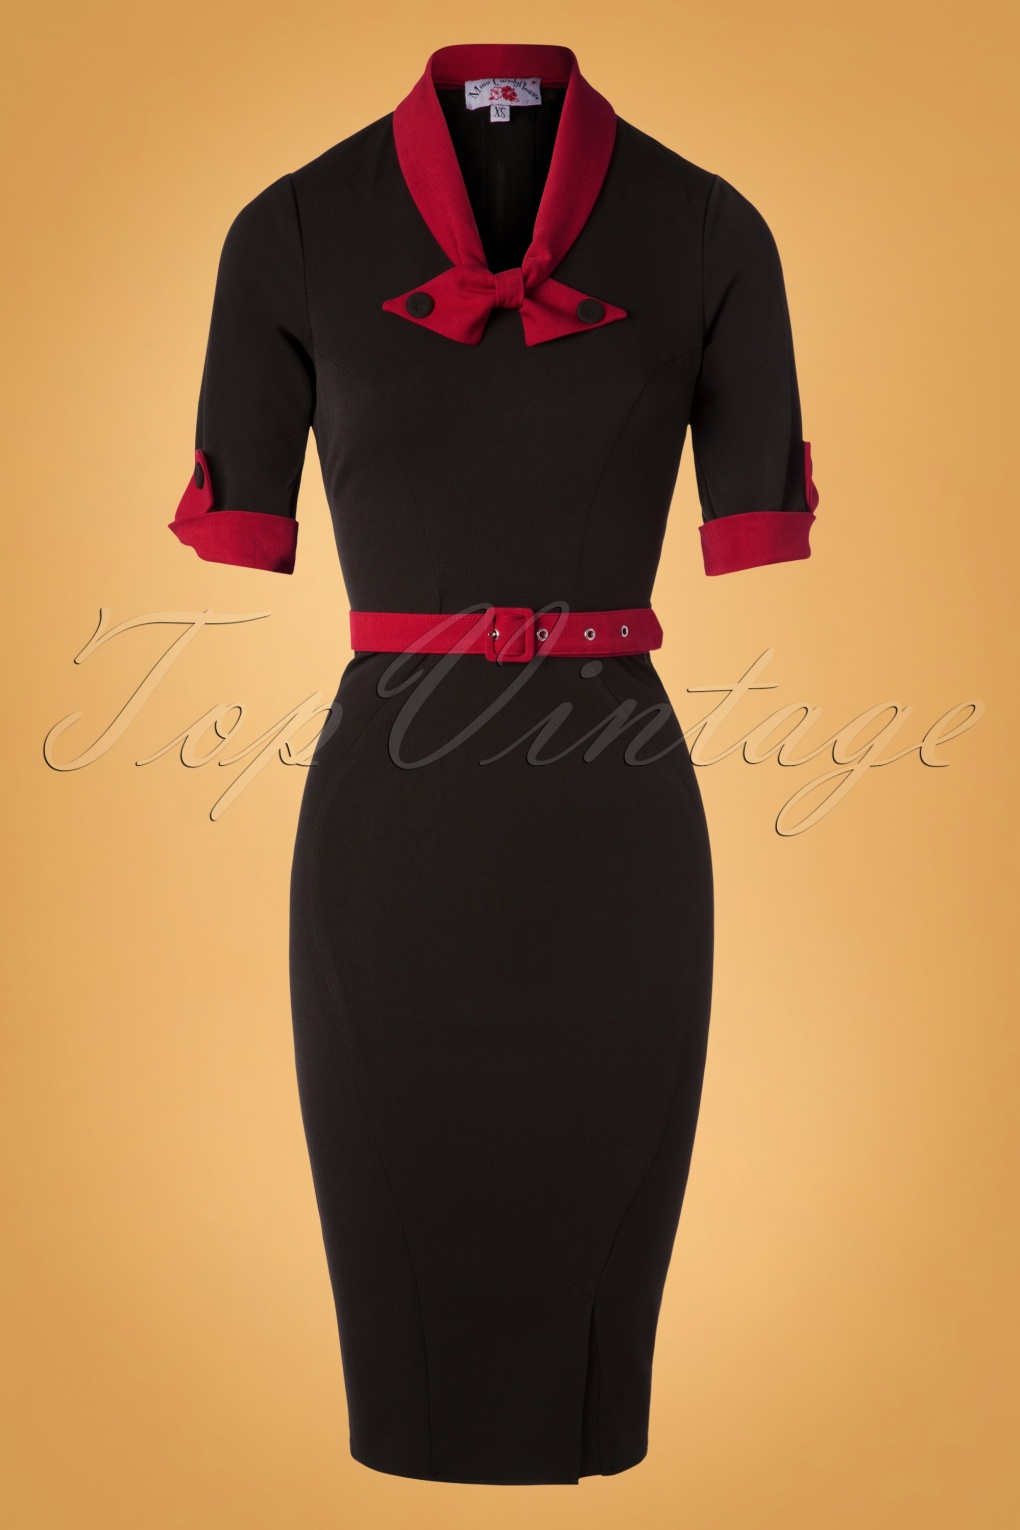 Wiggle Dresses | Pencil Dresses 40s, 50s, 60s 40s Kathryn Pencil Dress in Black and Red £53.81 AT vintagedancer.com